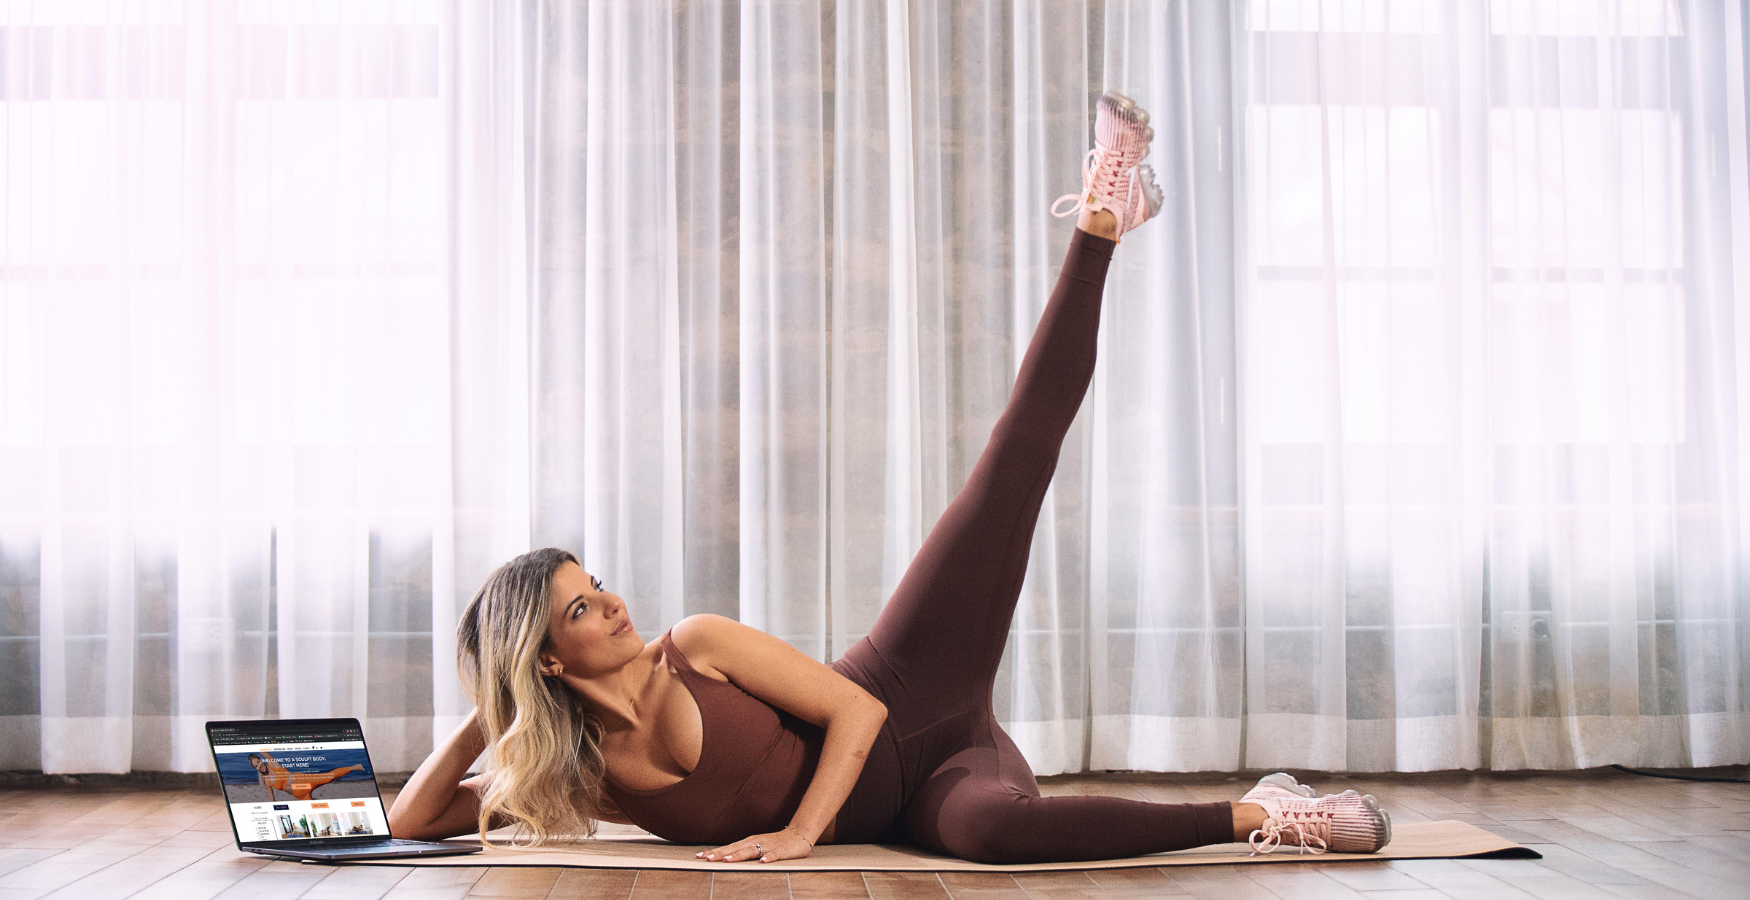 Alessia founder of A Sculpt Body doing a home workout using her fitness platform